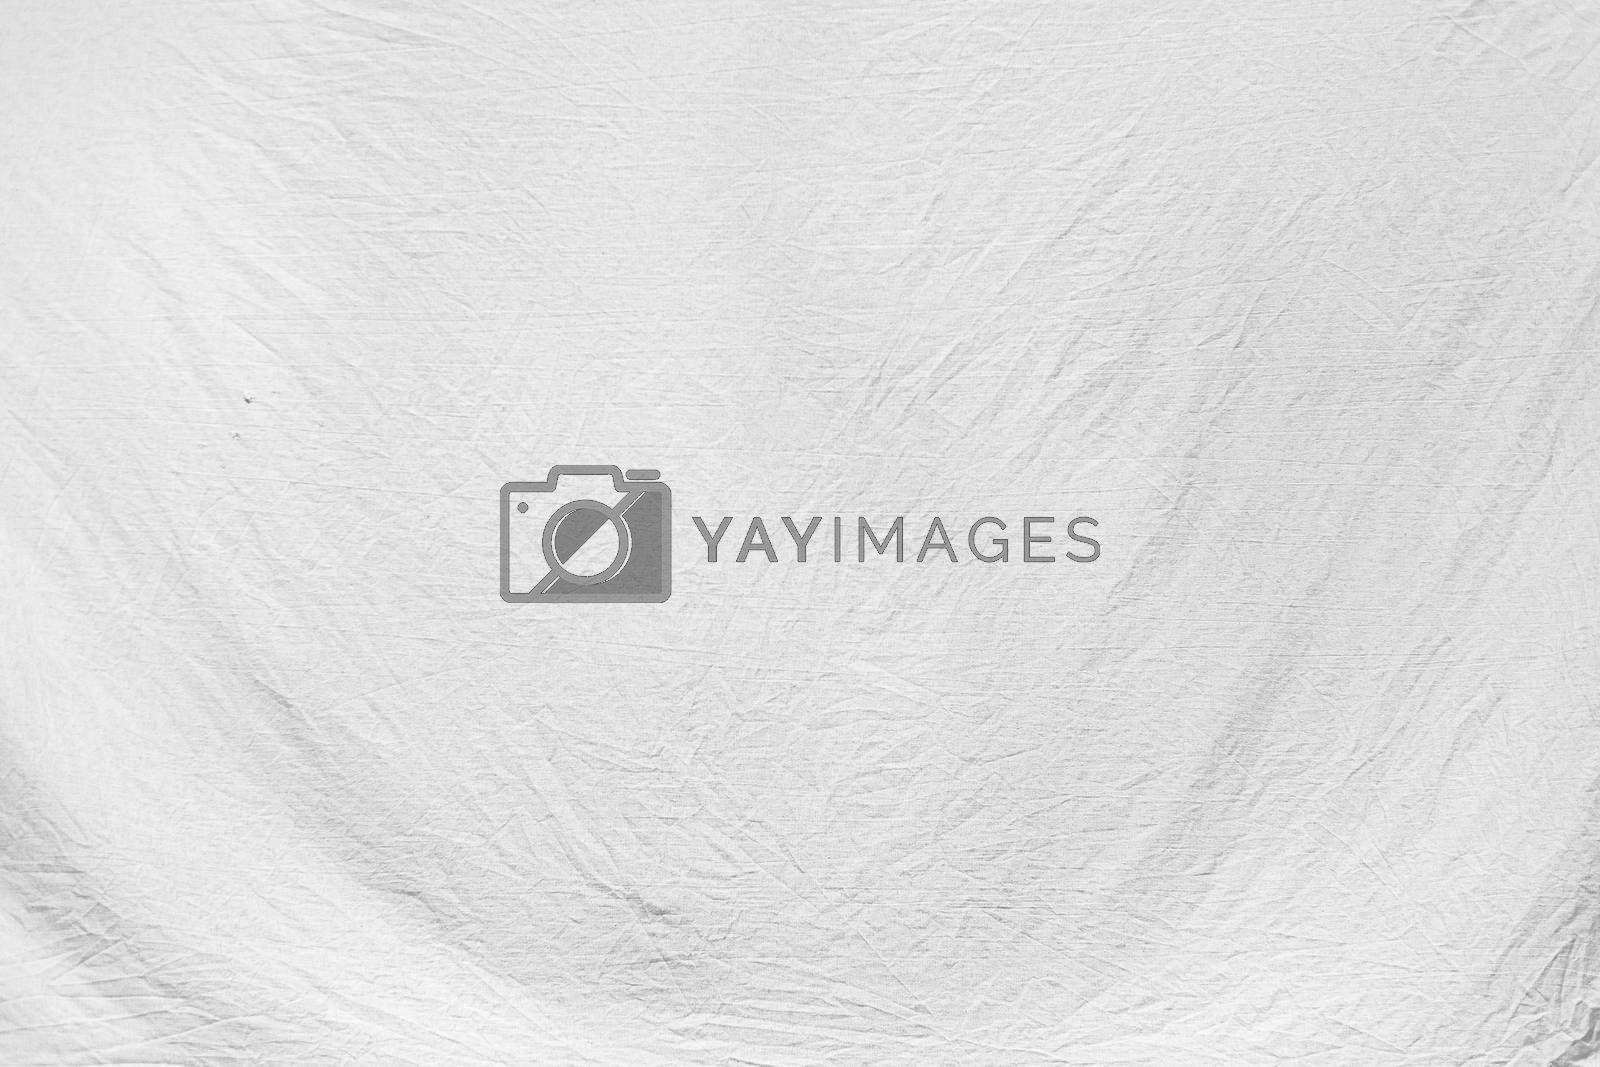 The High resolution white canvas texture. Fabric